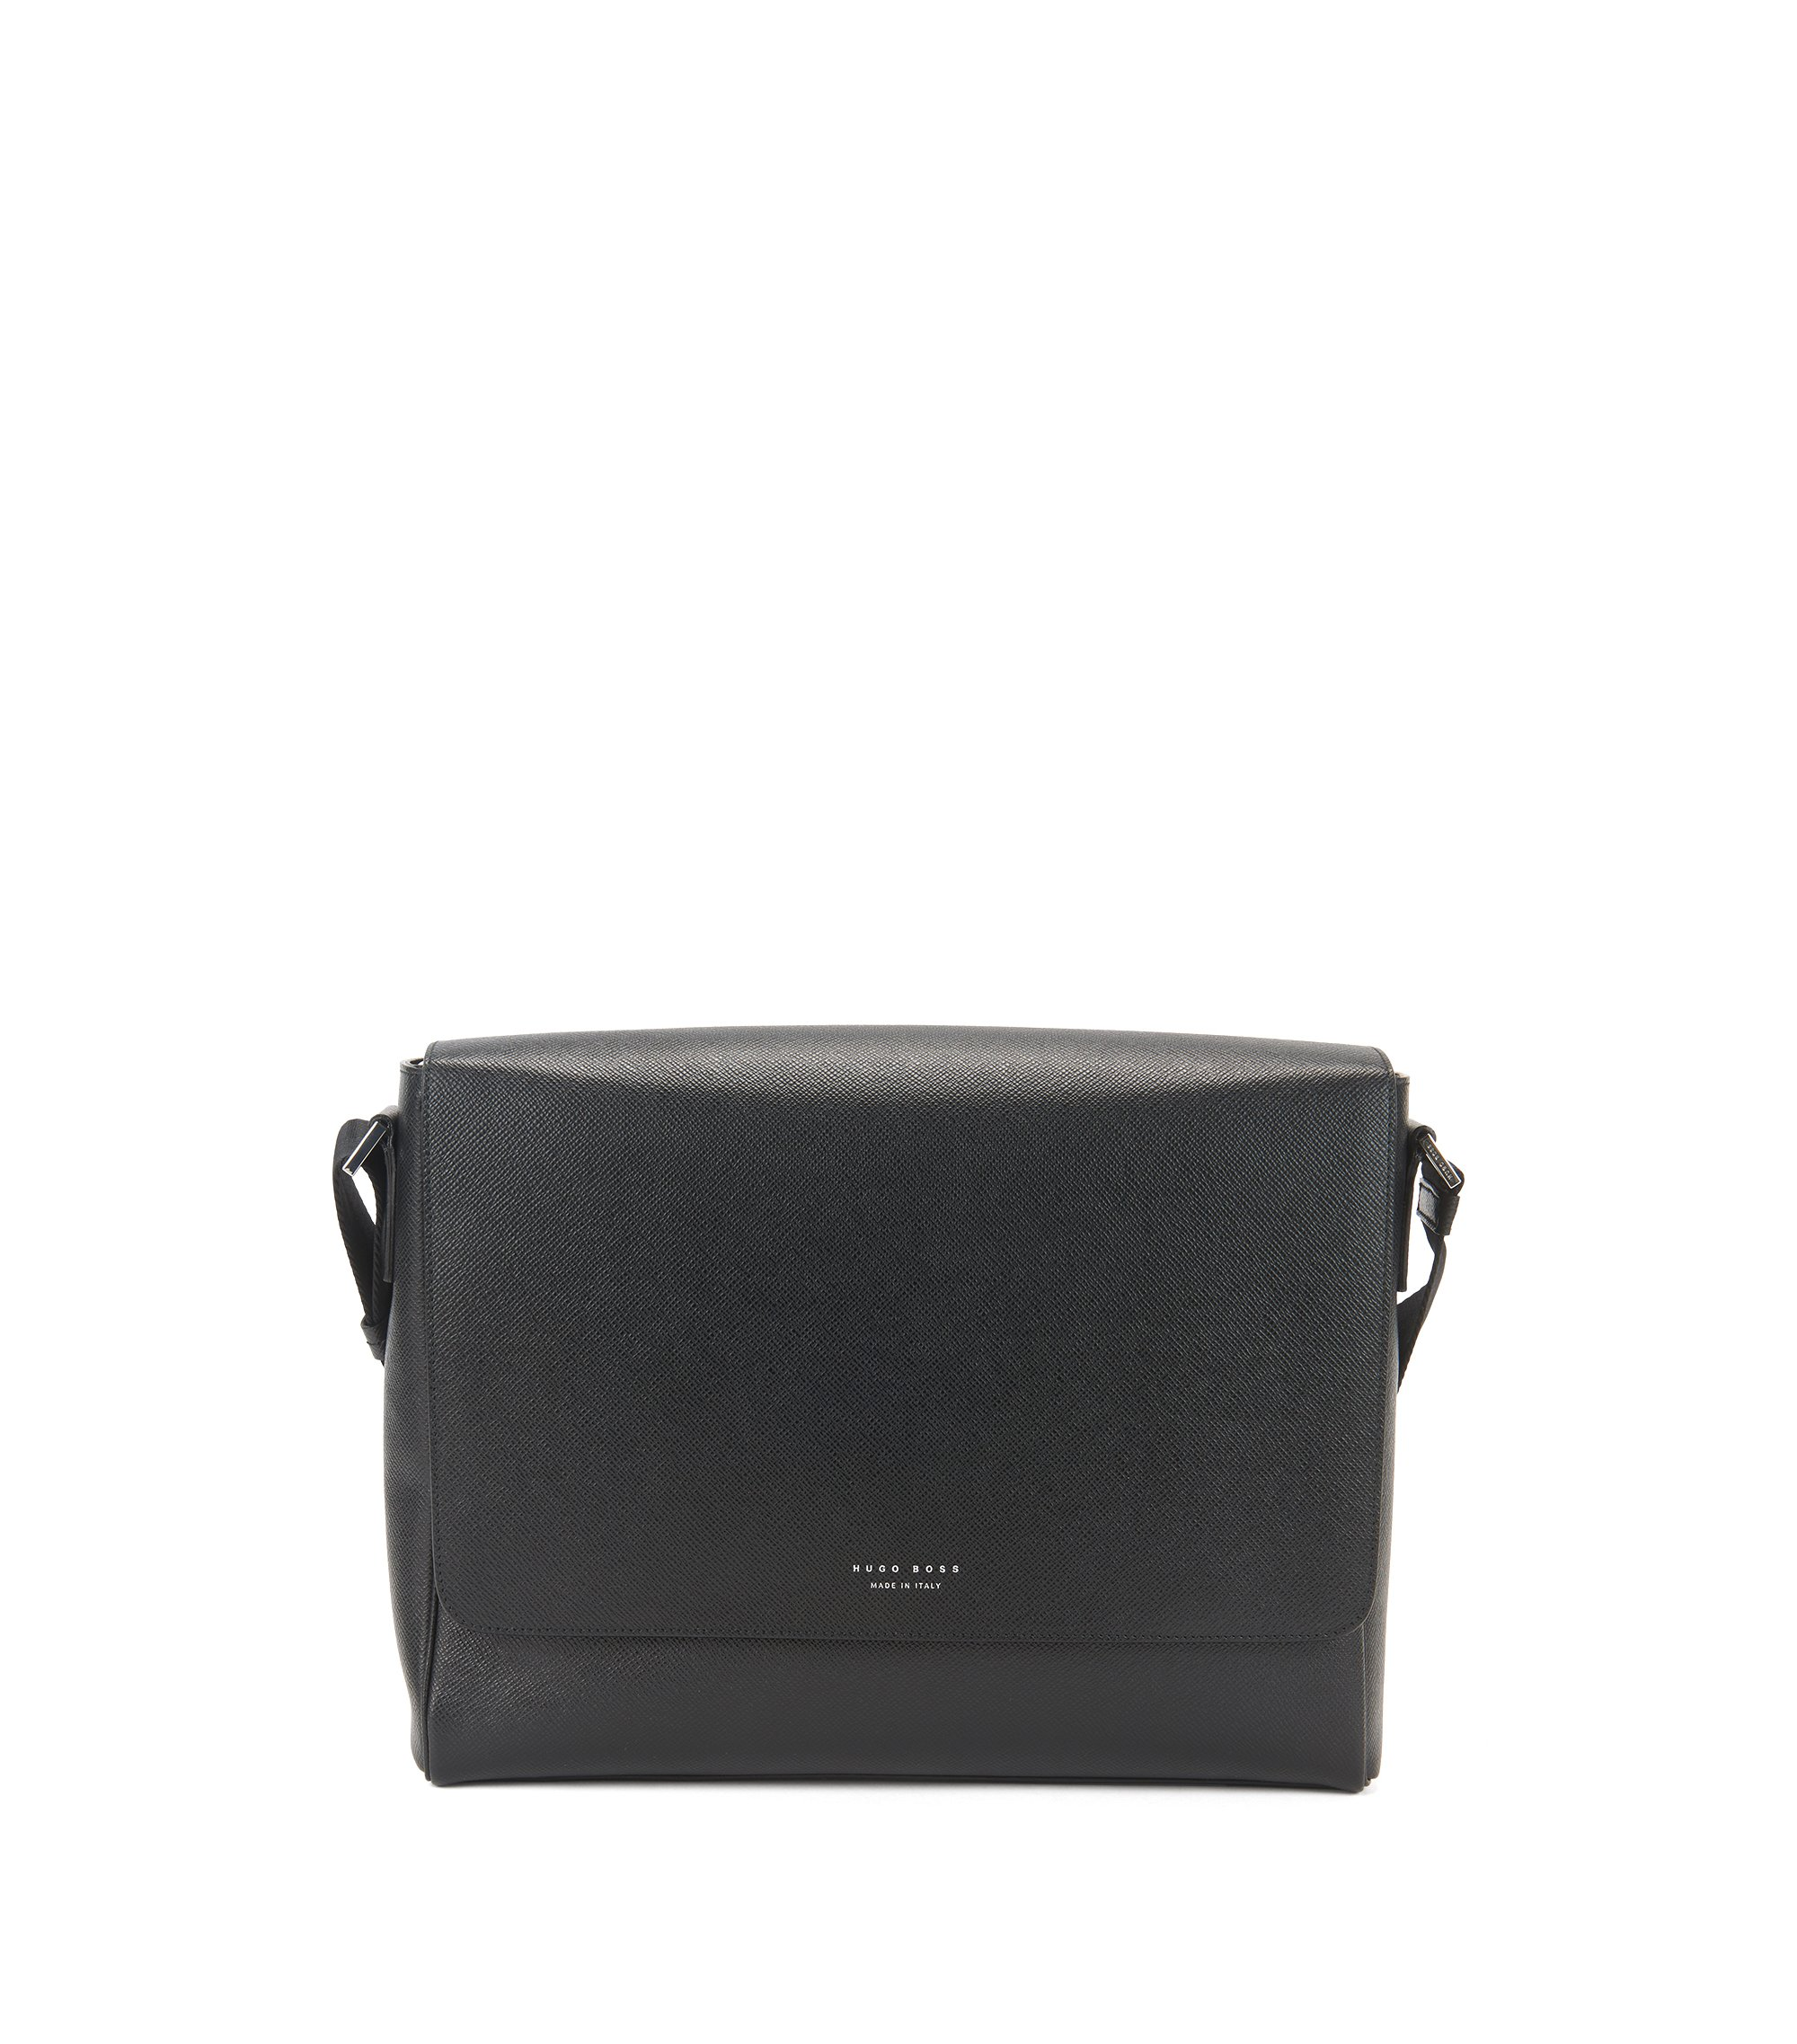 Leather Messenger Bag | Signature Mess Flap, Black